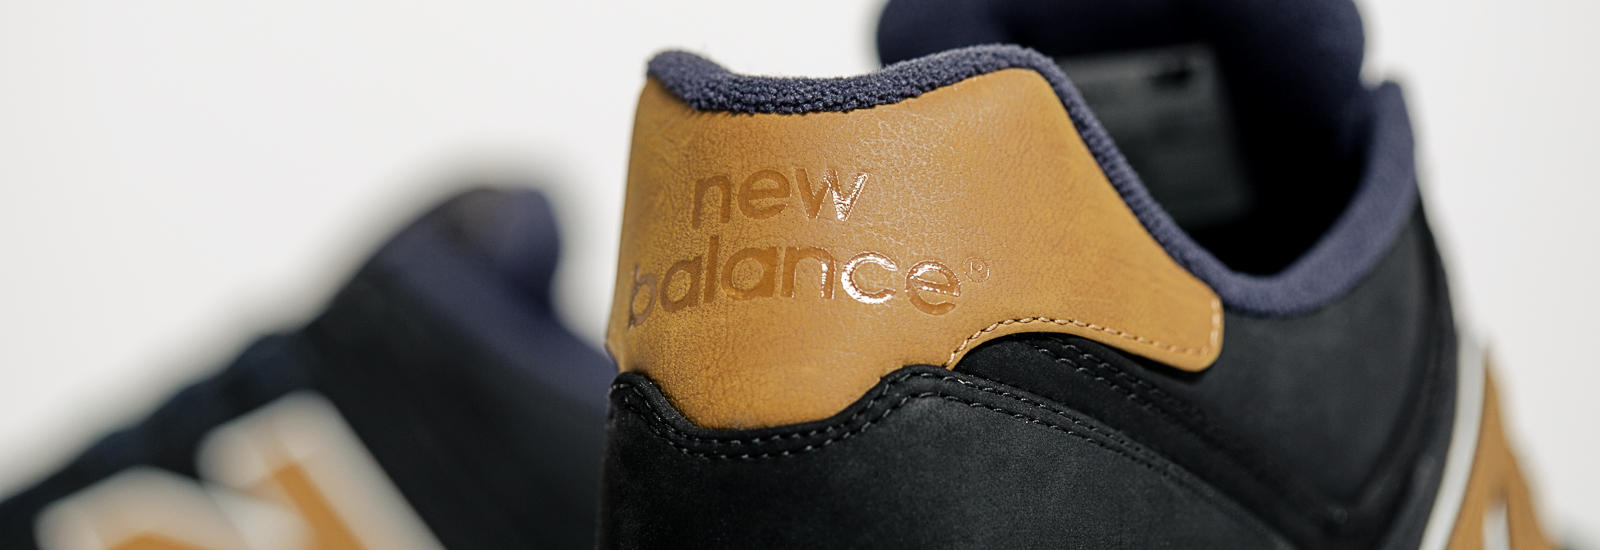 New balance stock price and symbol philly diet doctor dr jon new balance stock price and symbol biocorpaavc Choice Image